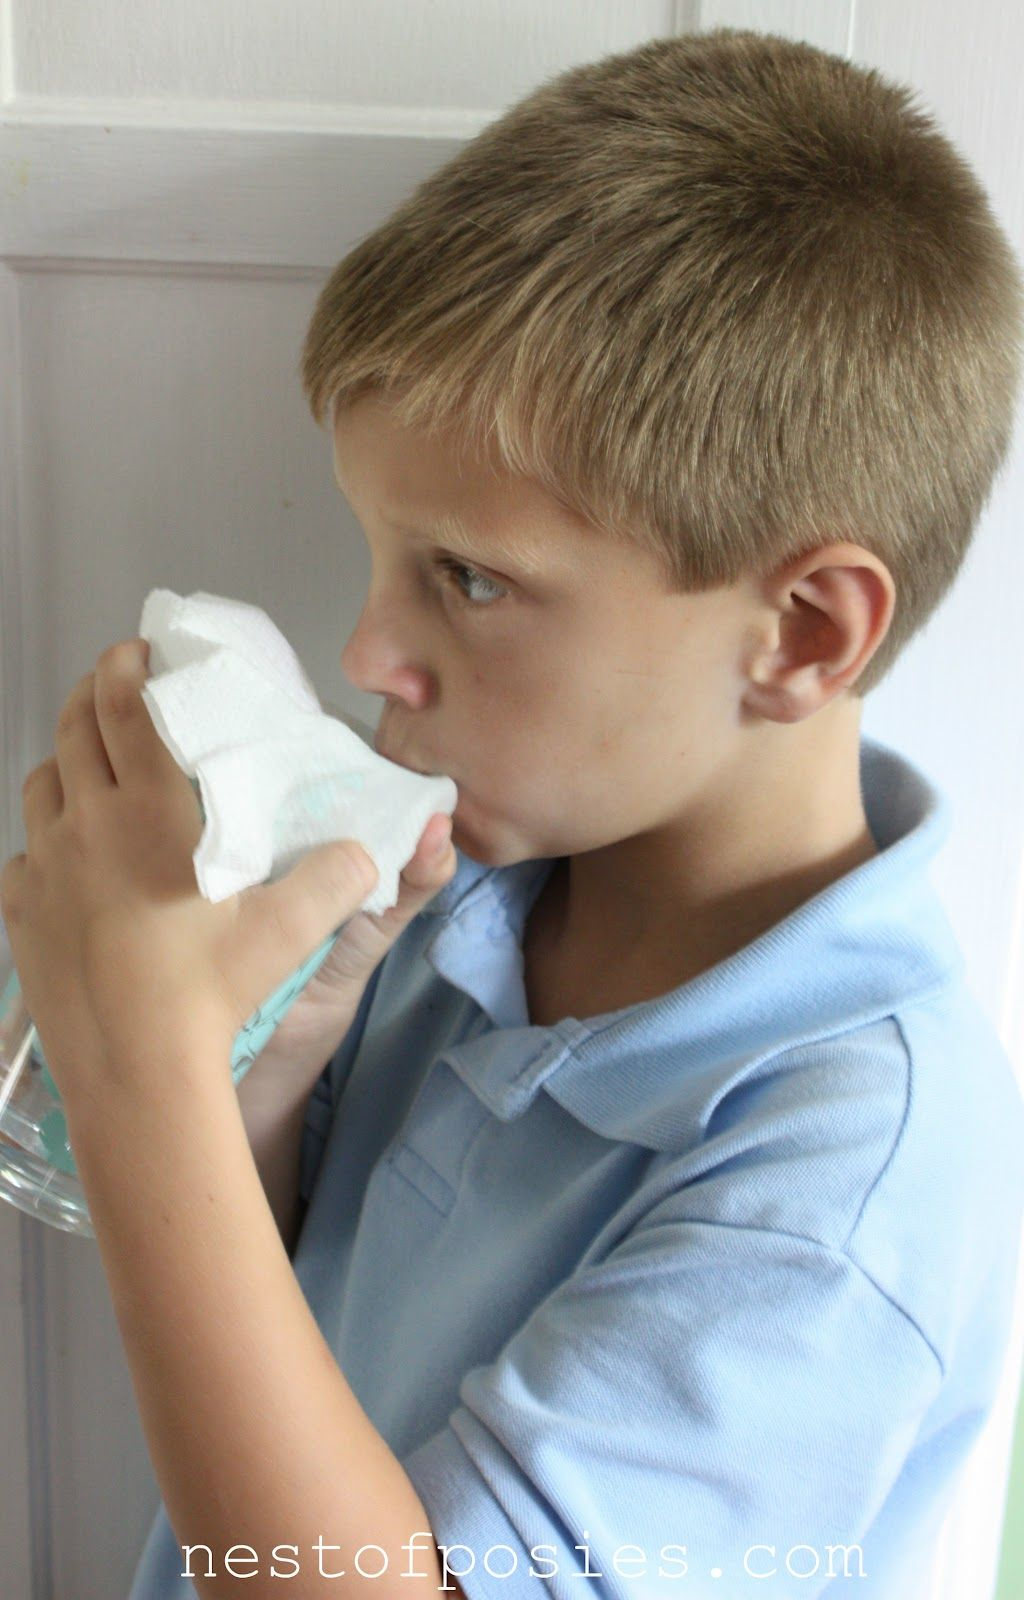 How to get rid of hiccups - How To Cure The Hiccups Drink A Glass Of Water Through A Paper Towel